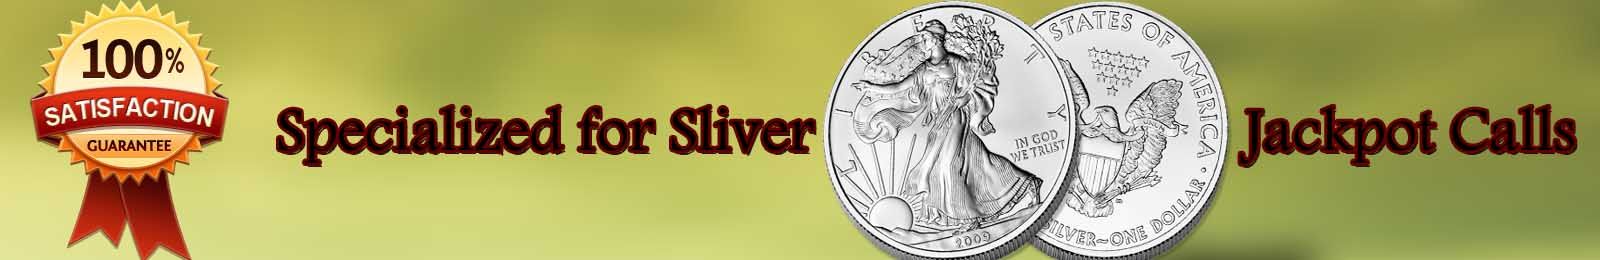 MCX Silver Jackpot Trading Calls